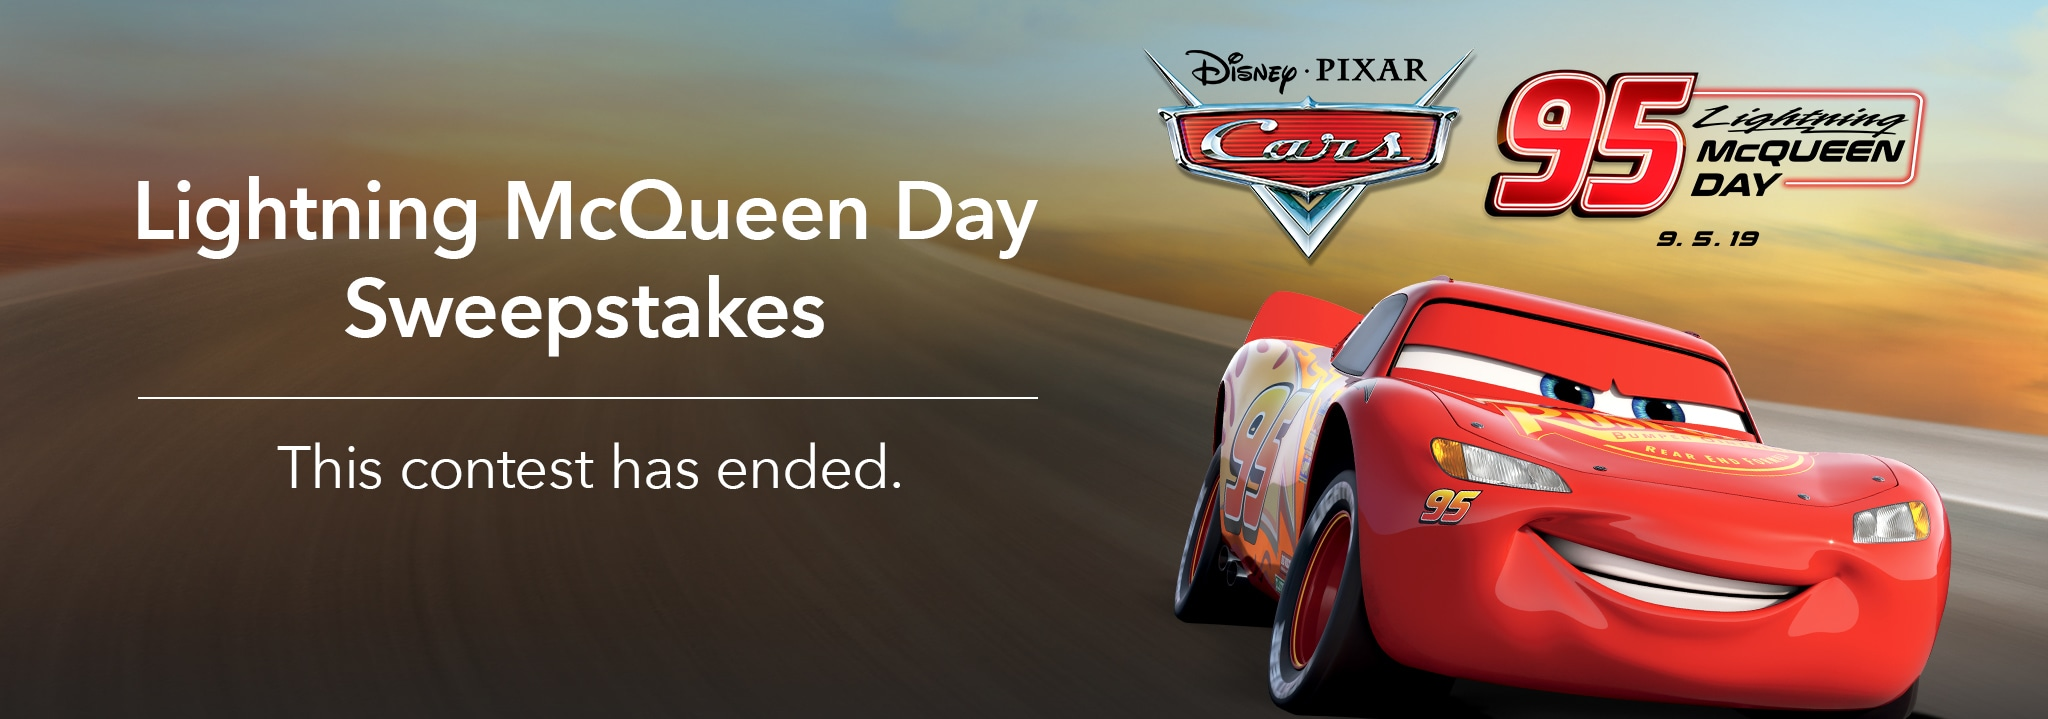 Lightning McQueen Day Sweepstakes - This contest has ended.